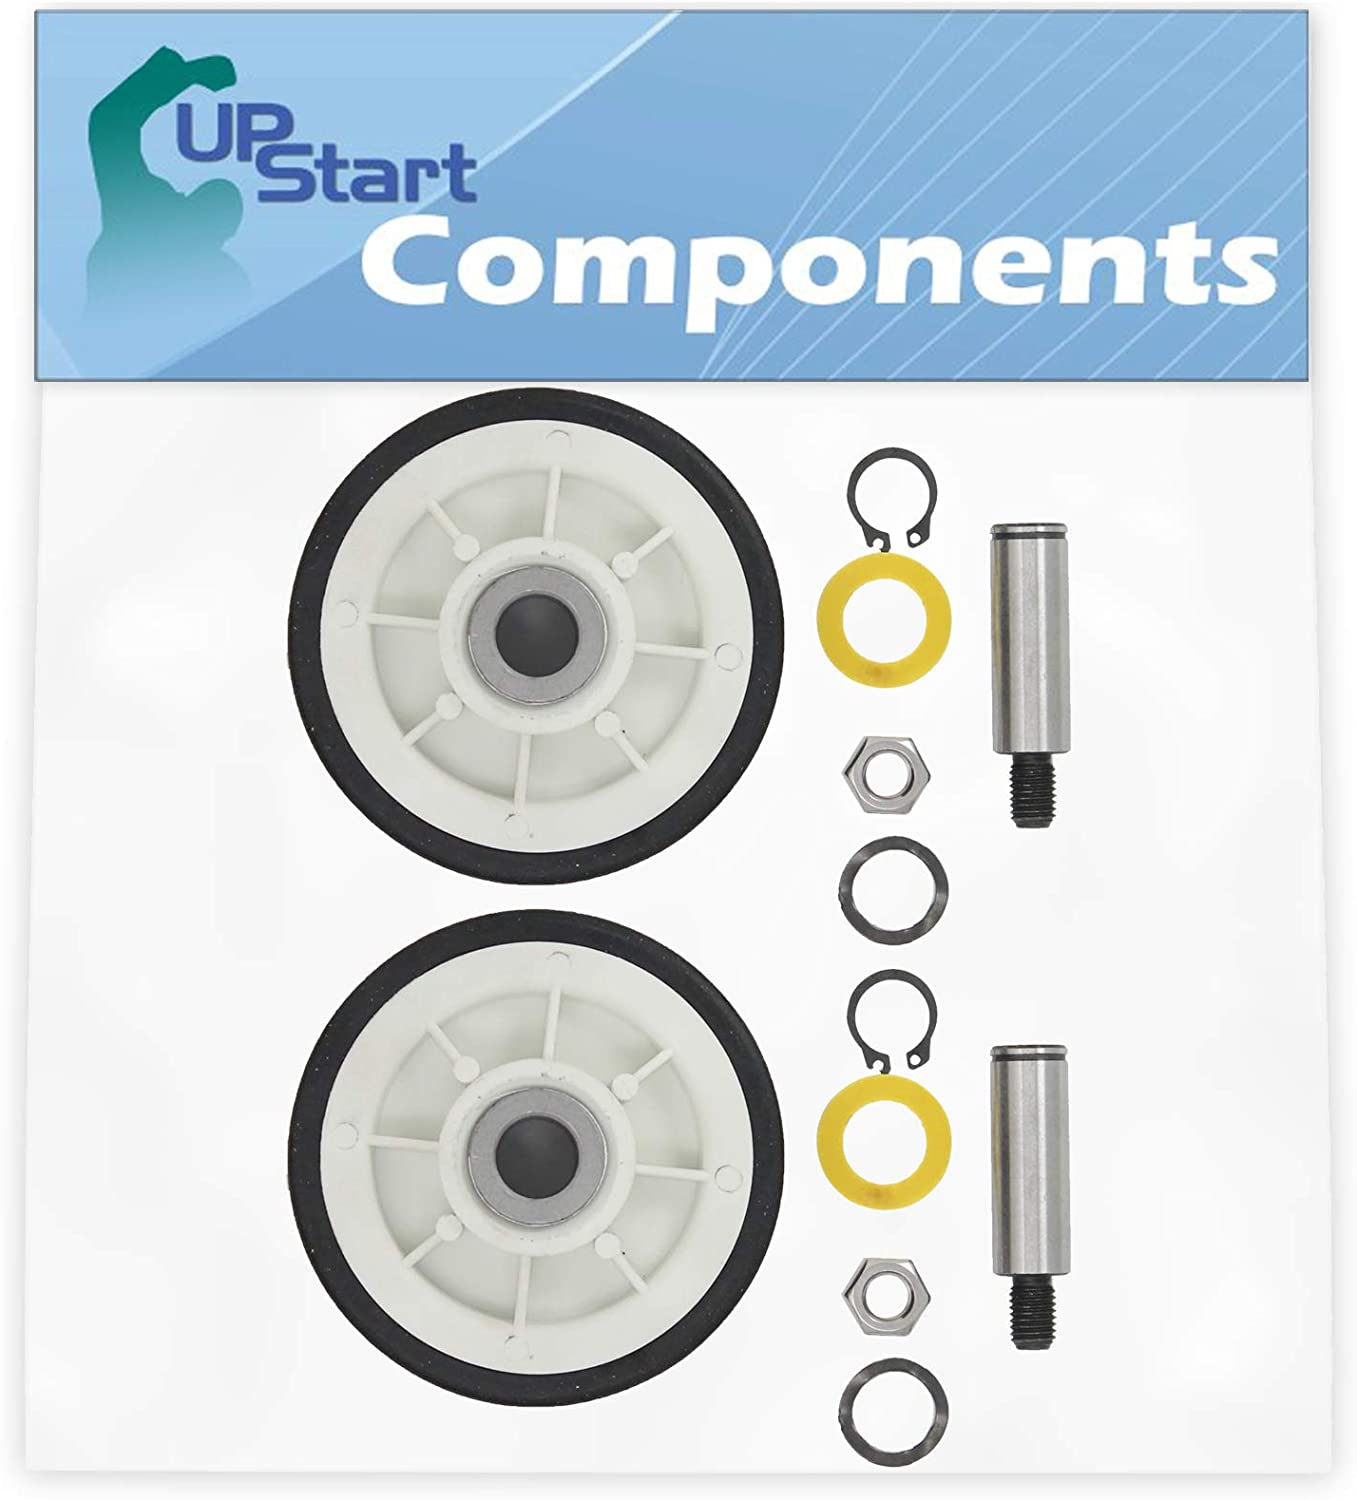 2-Pack 12001541 Drum Support Roller Kit Replacement for Maytag MDE2600AYW Dryer - Compatible with 303373 Dryer Drum Roller Wheel - UpStart Components Brand